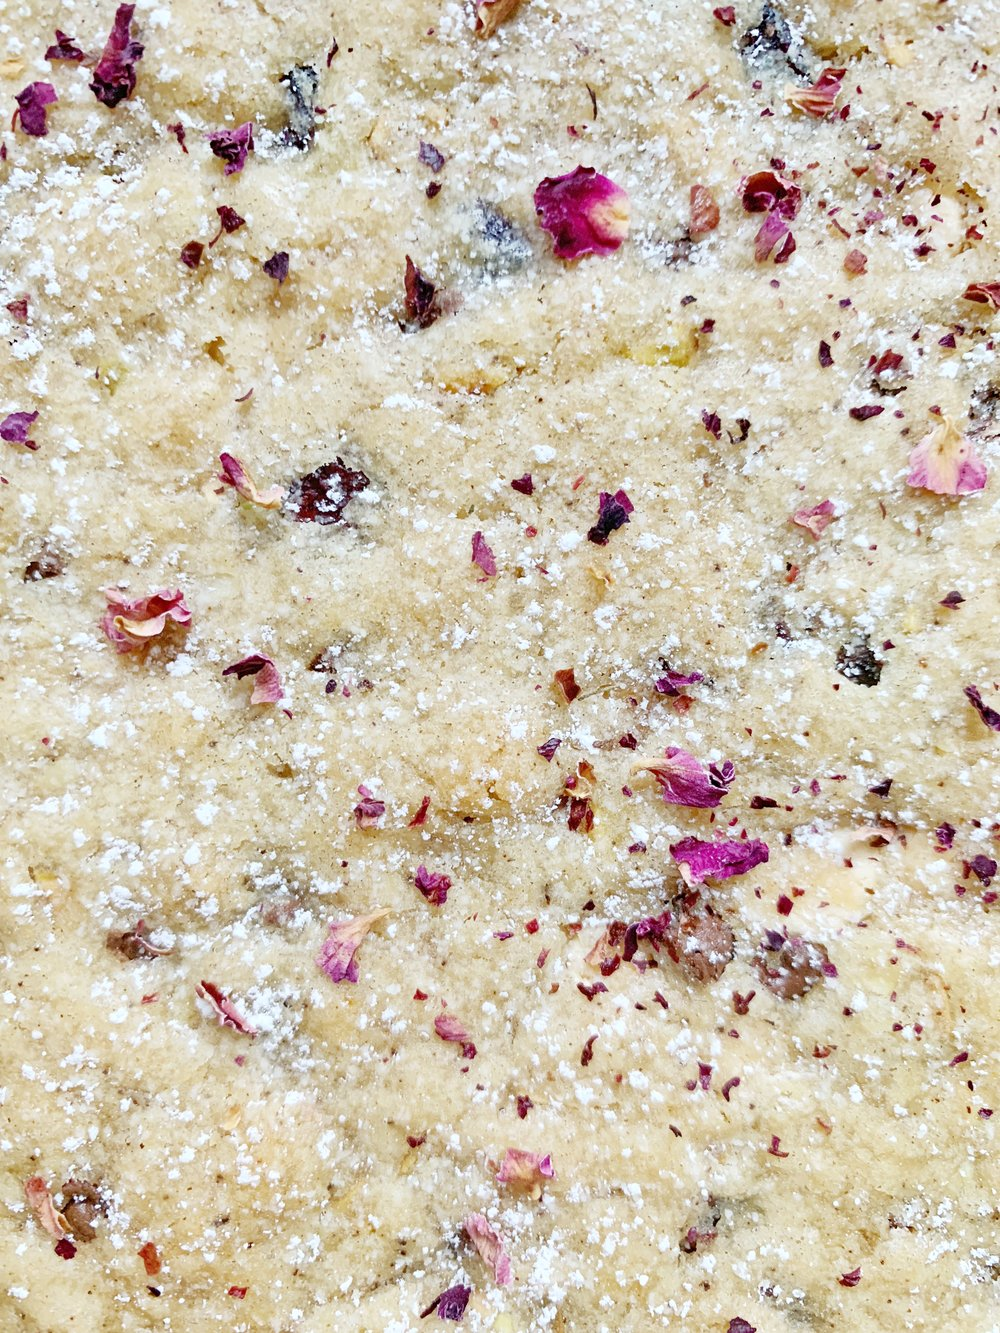 brown butter blondies with pistachios, cranberries, white chocolate, and rose petals by Afsana Liza